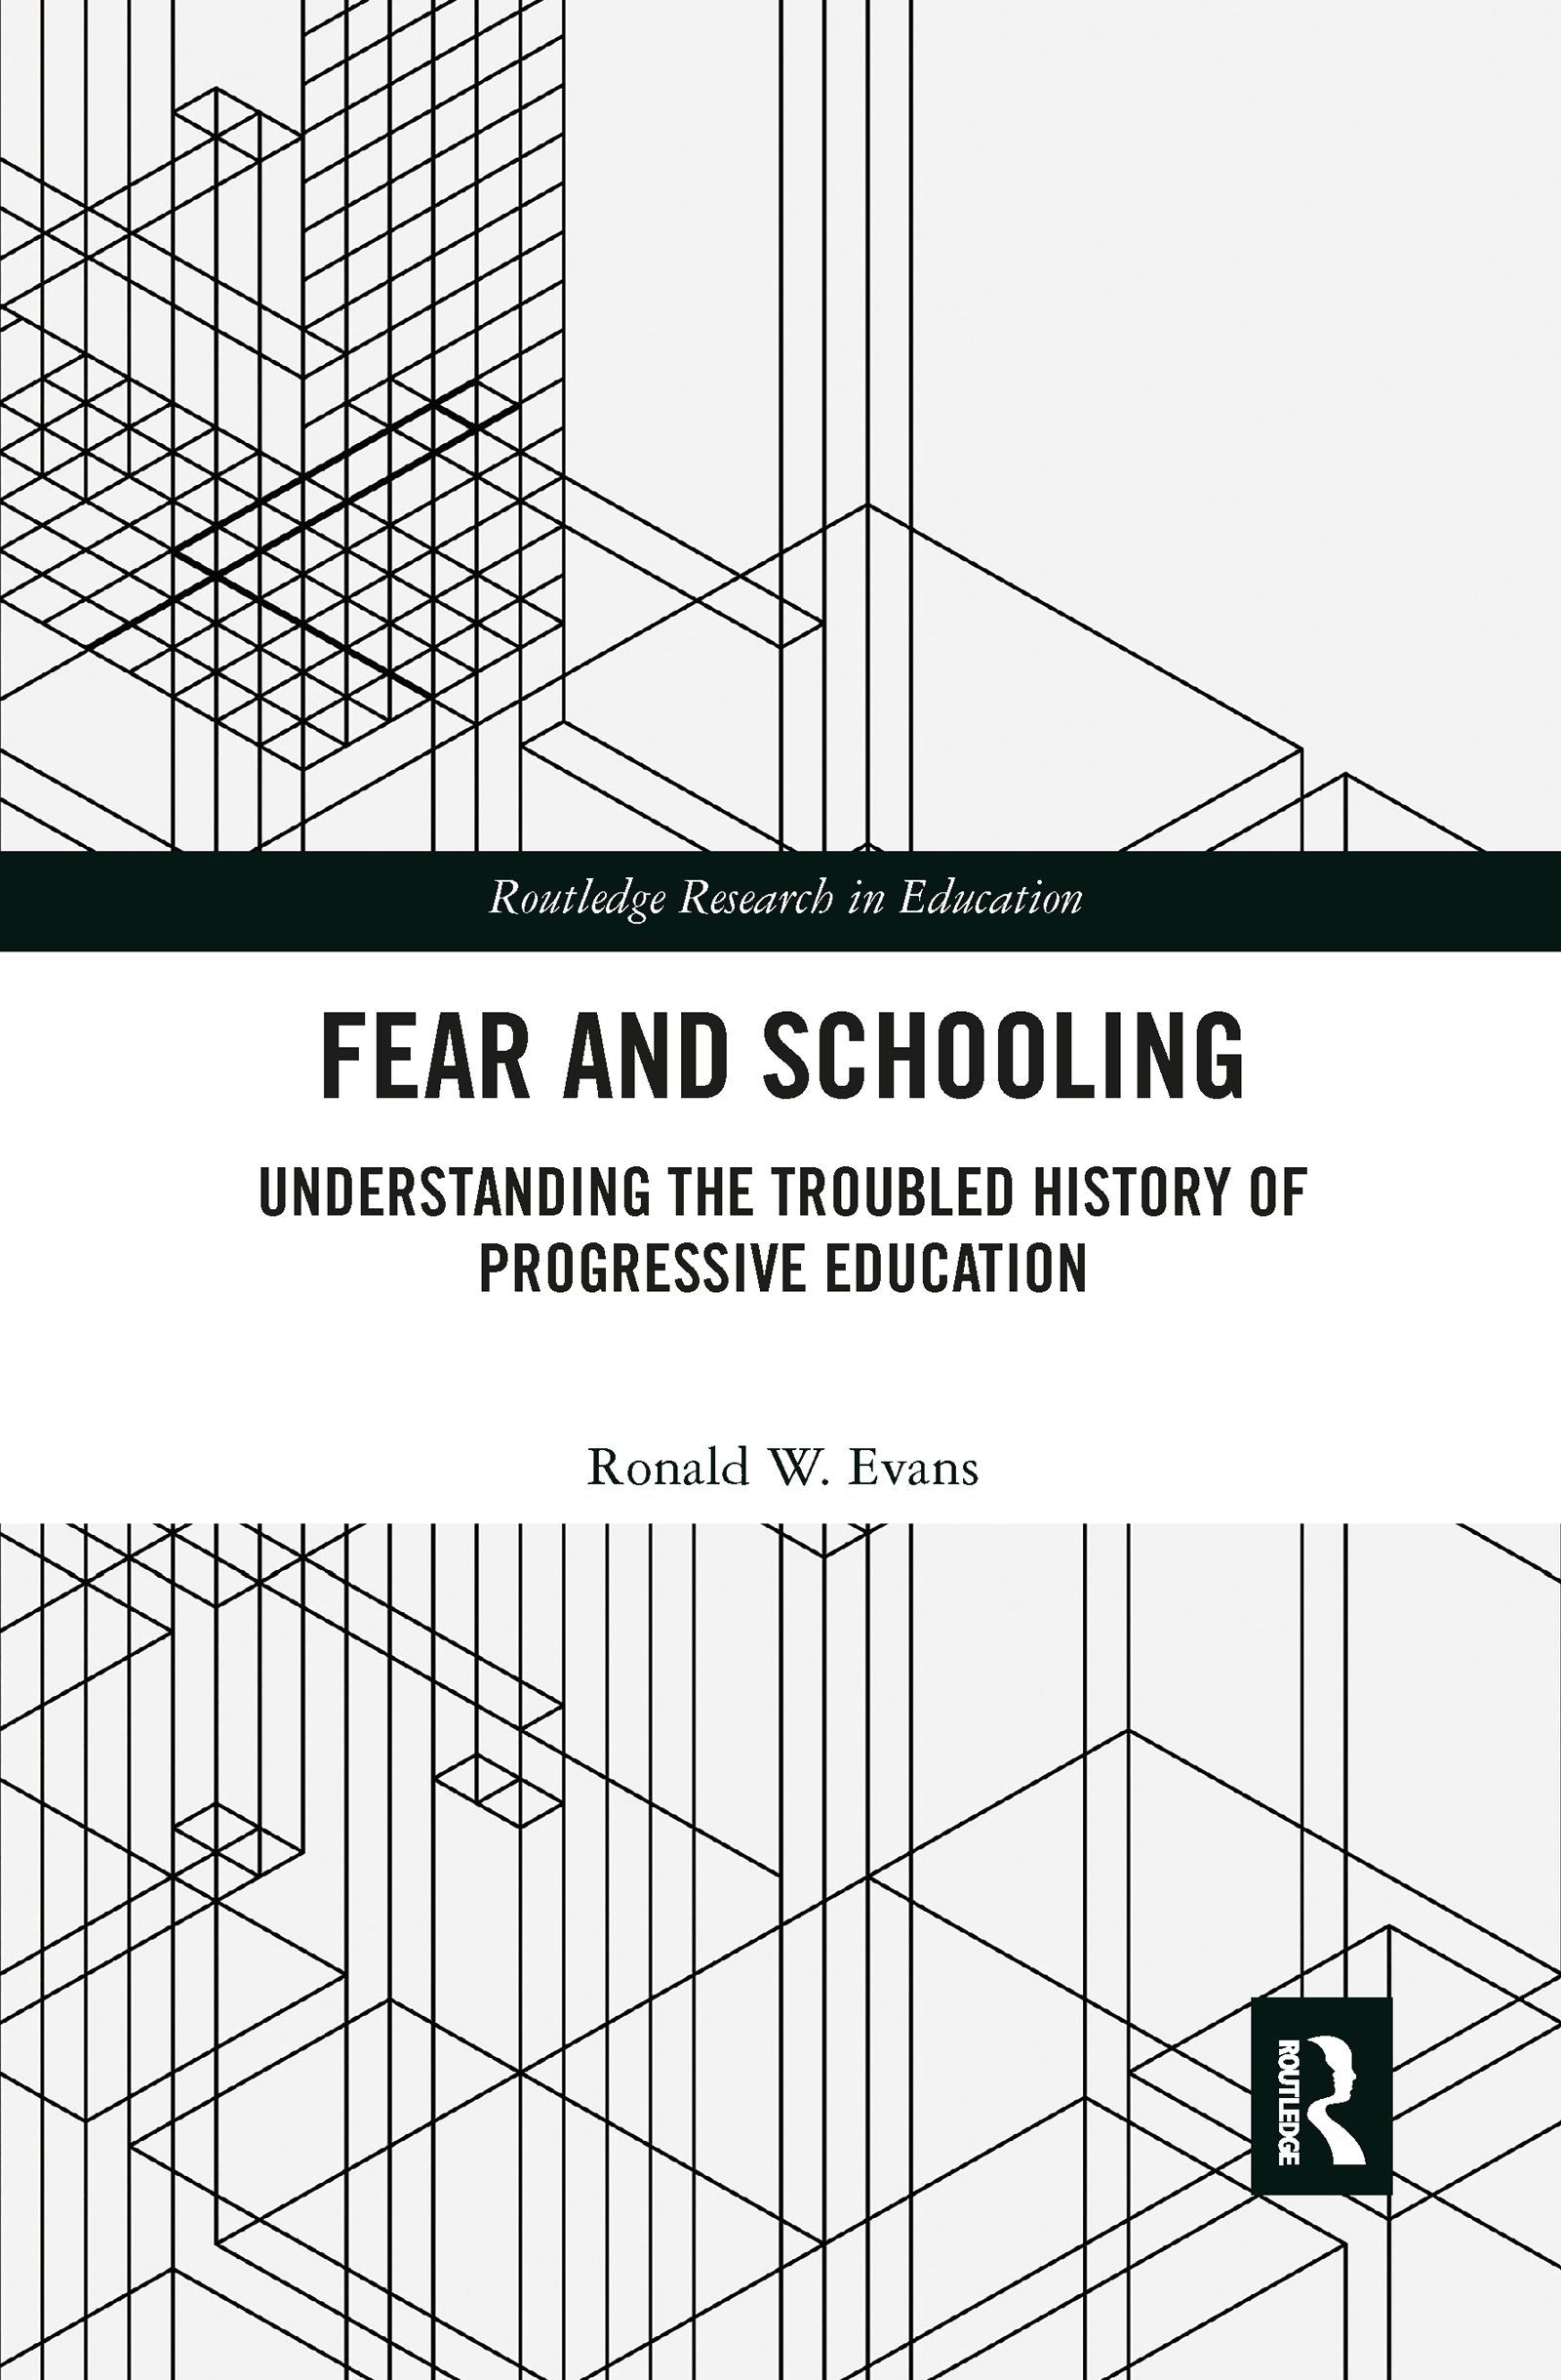 Fear and Schooling